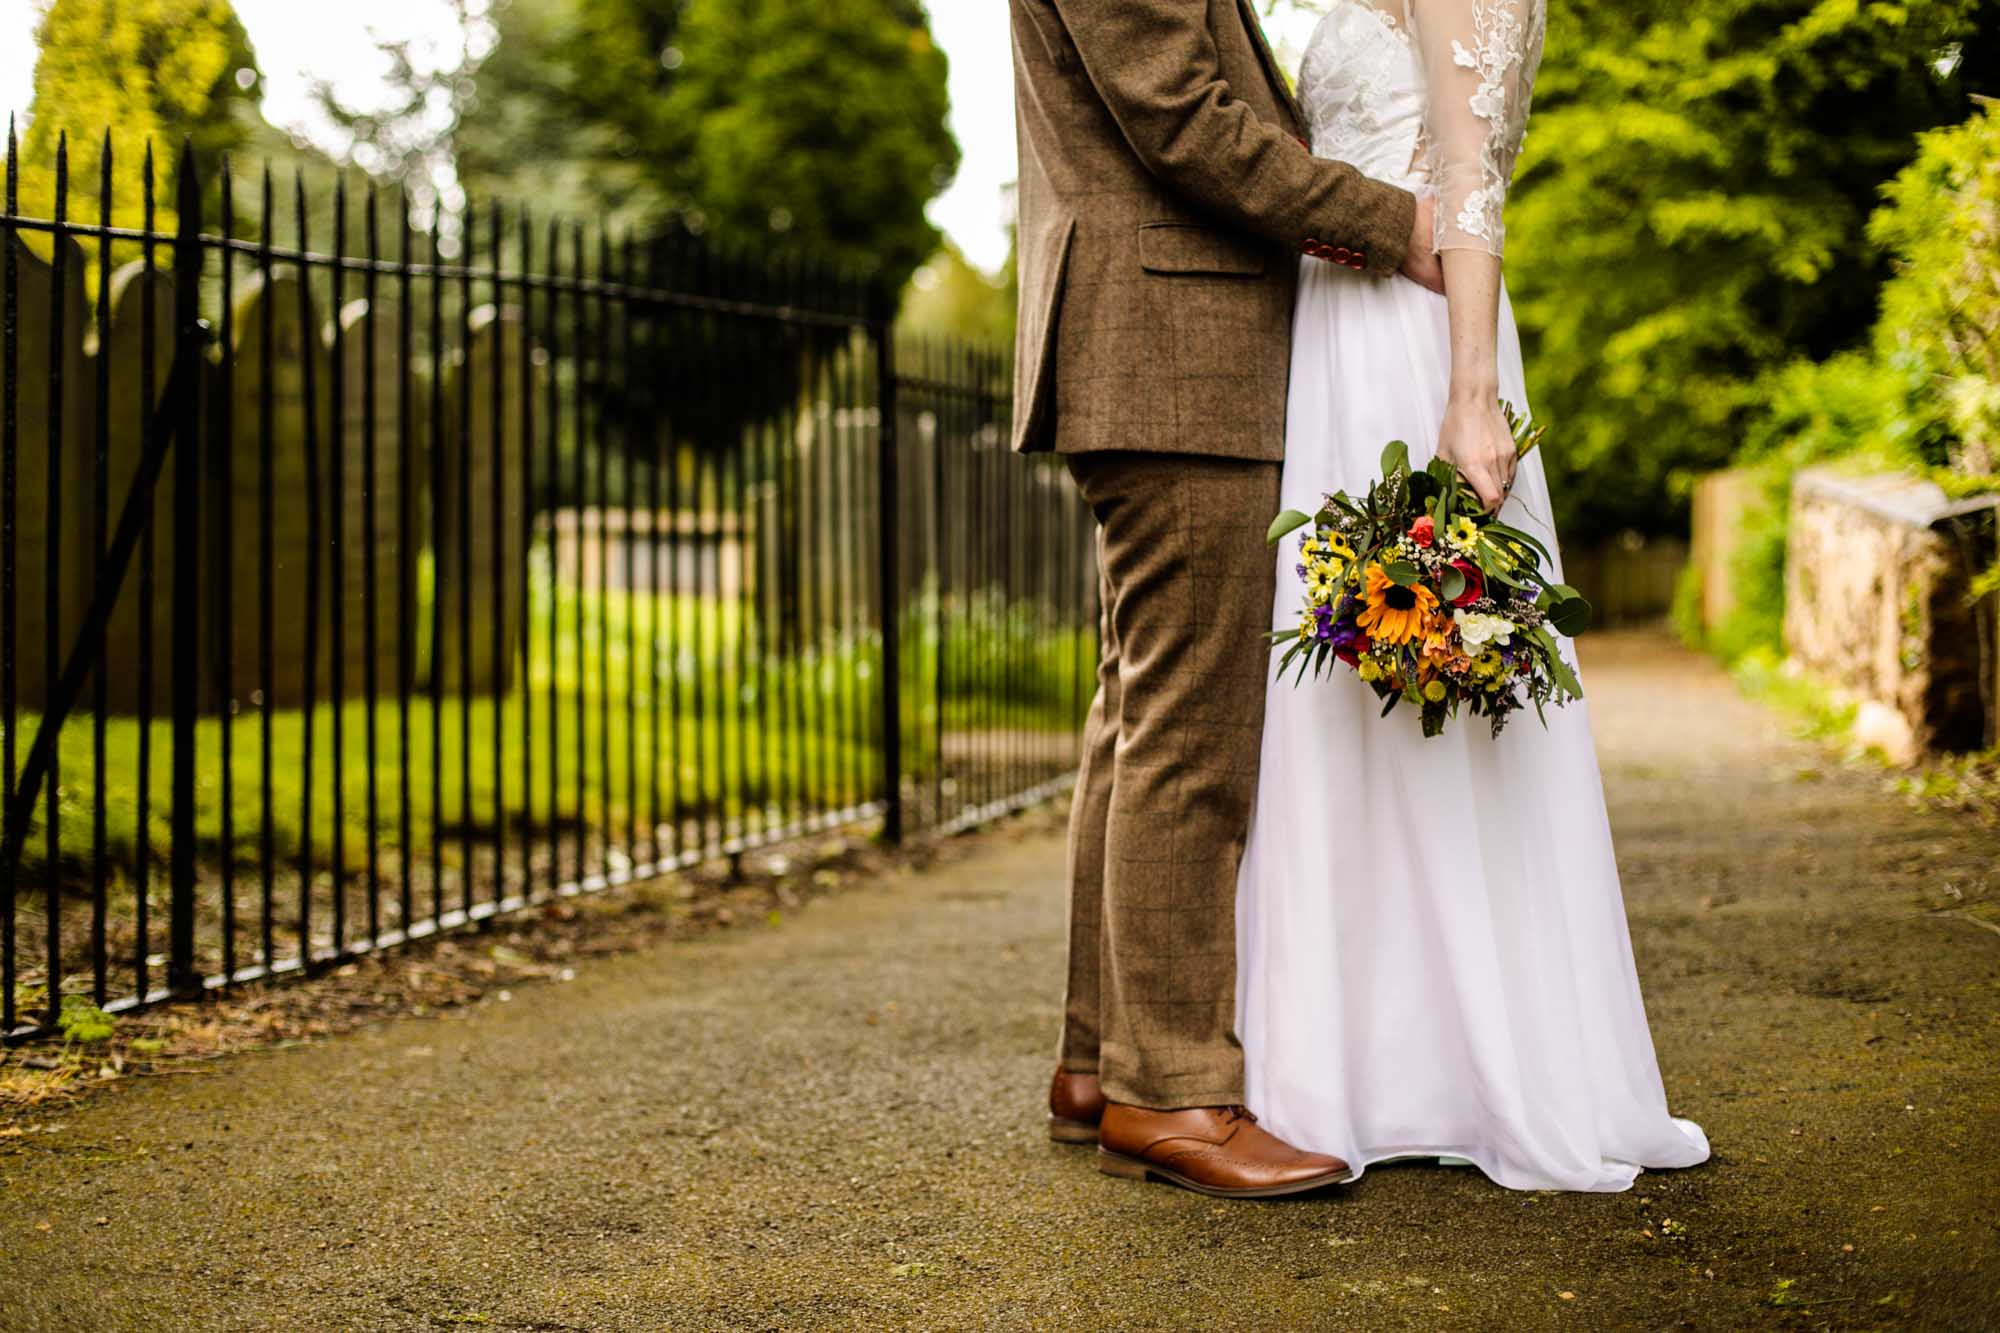 Bride and grooms feet with colourful wedding flowers